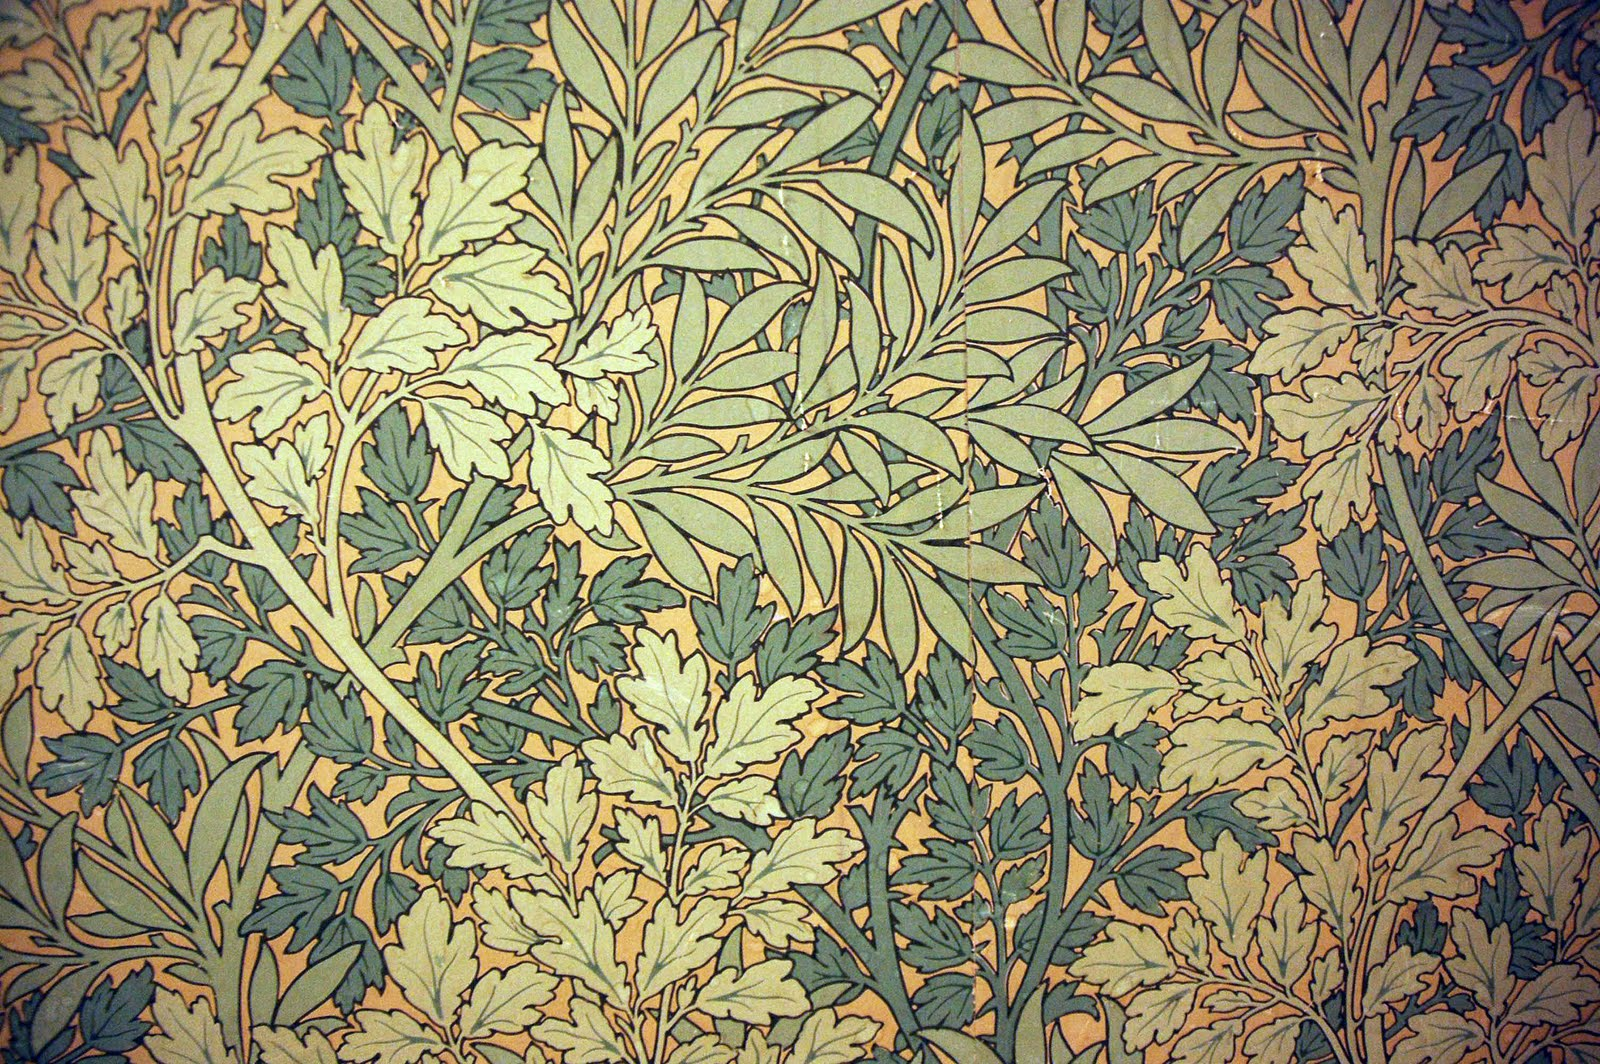 Free Download Displaying 19 Images For Arts And Crafts Movement Wallpaper 1600x1064 For Your Desktop Mobile Tablet Explore 50 Arts And Crafts Wallpaper Books William Morris Reproduction Wallpaper William